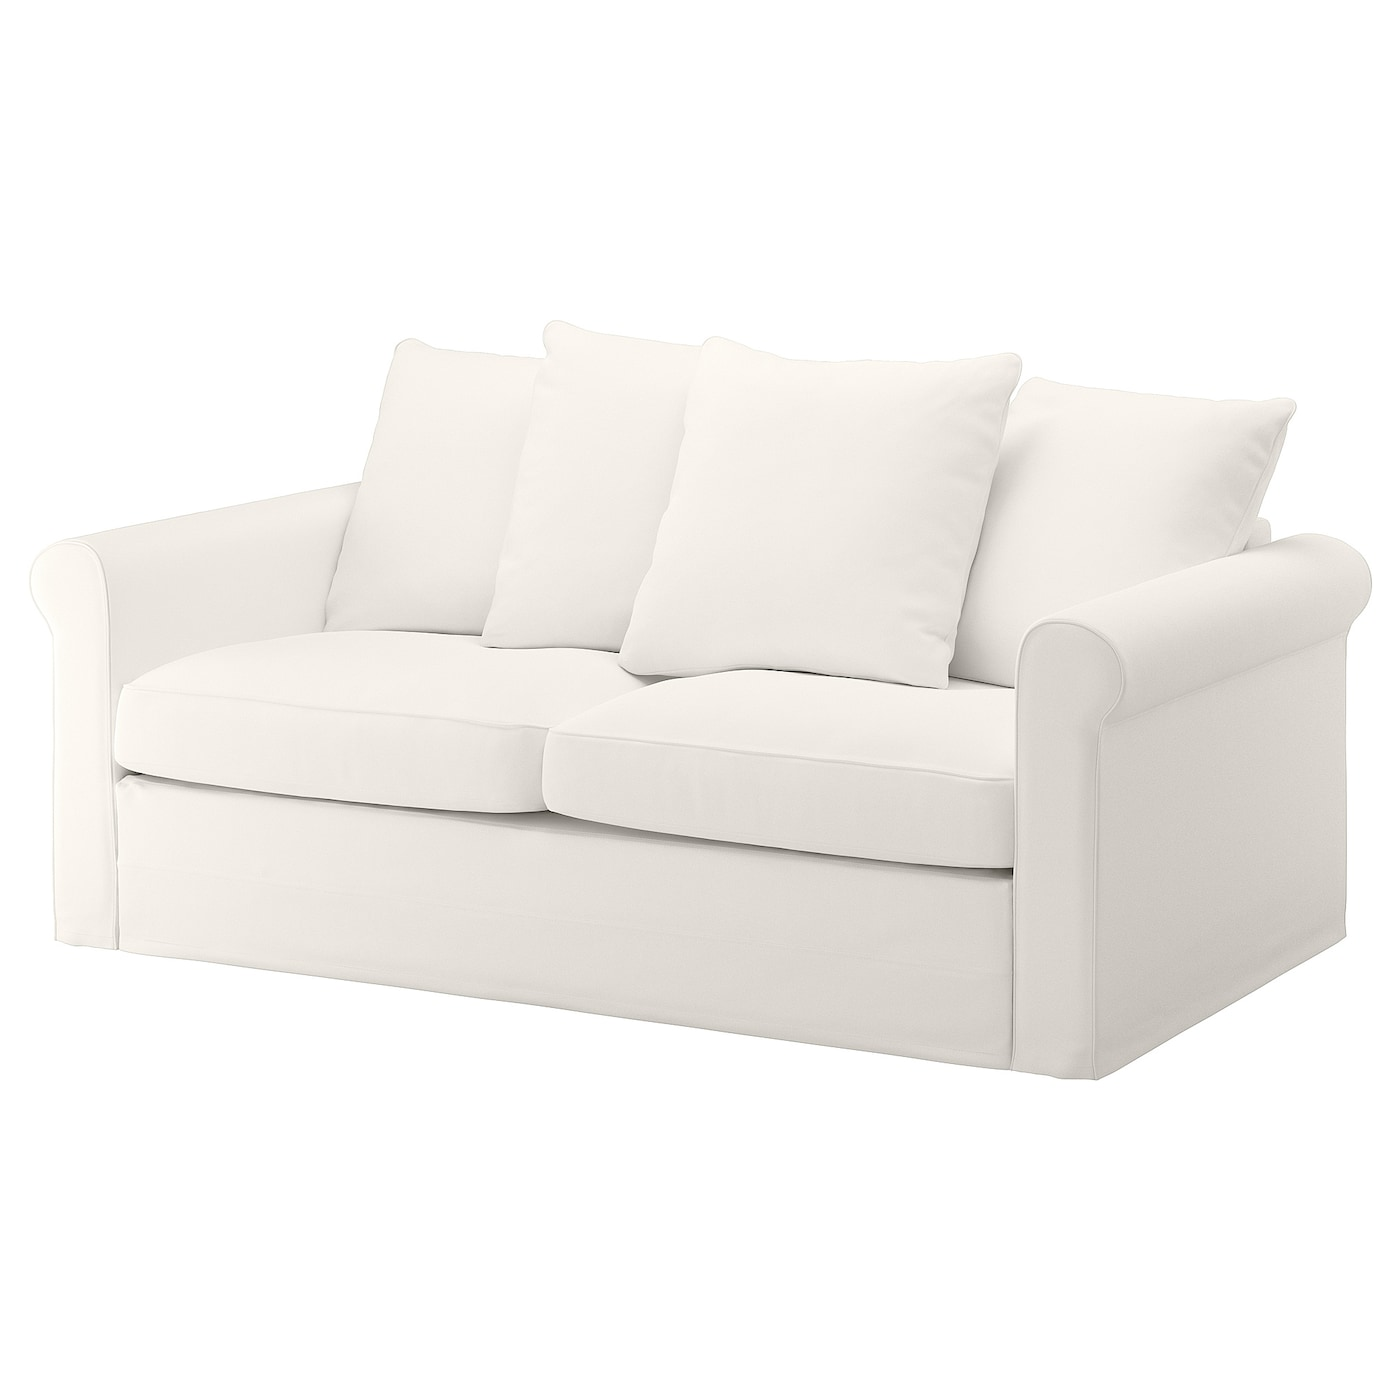 IKEA GRÖNLID 2-seat sofa-bed 10 year guarantee. Read about the terms in the guarantee brochure.